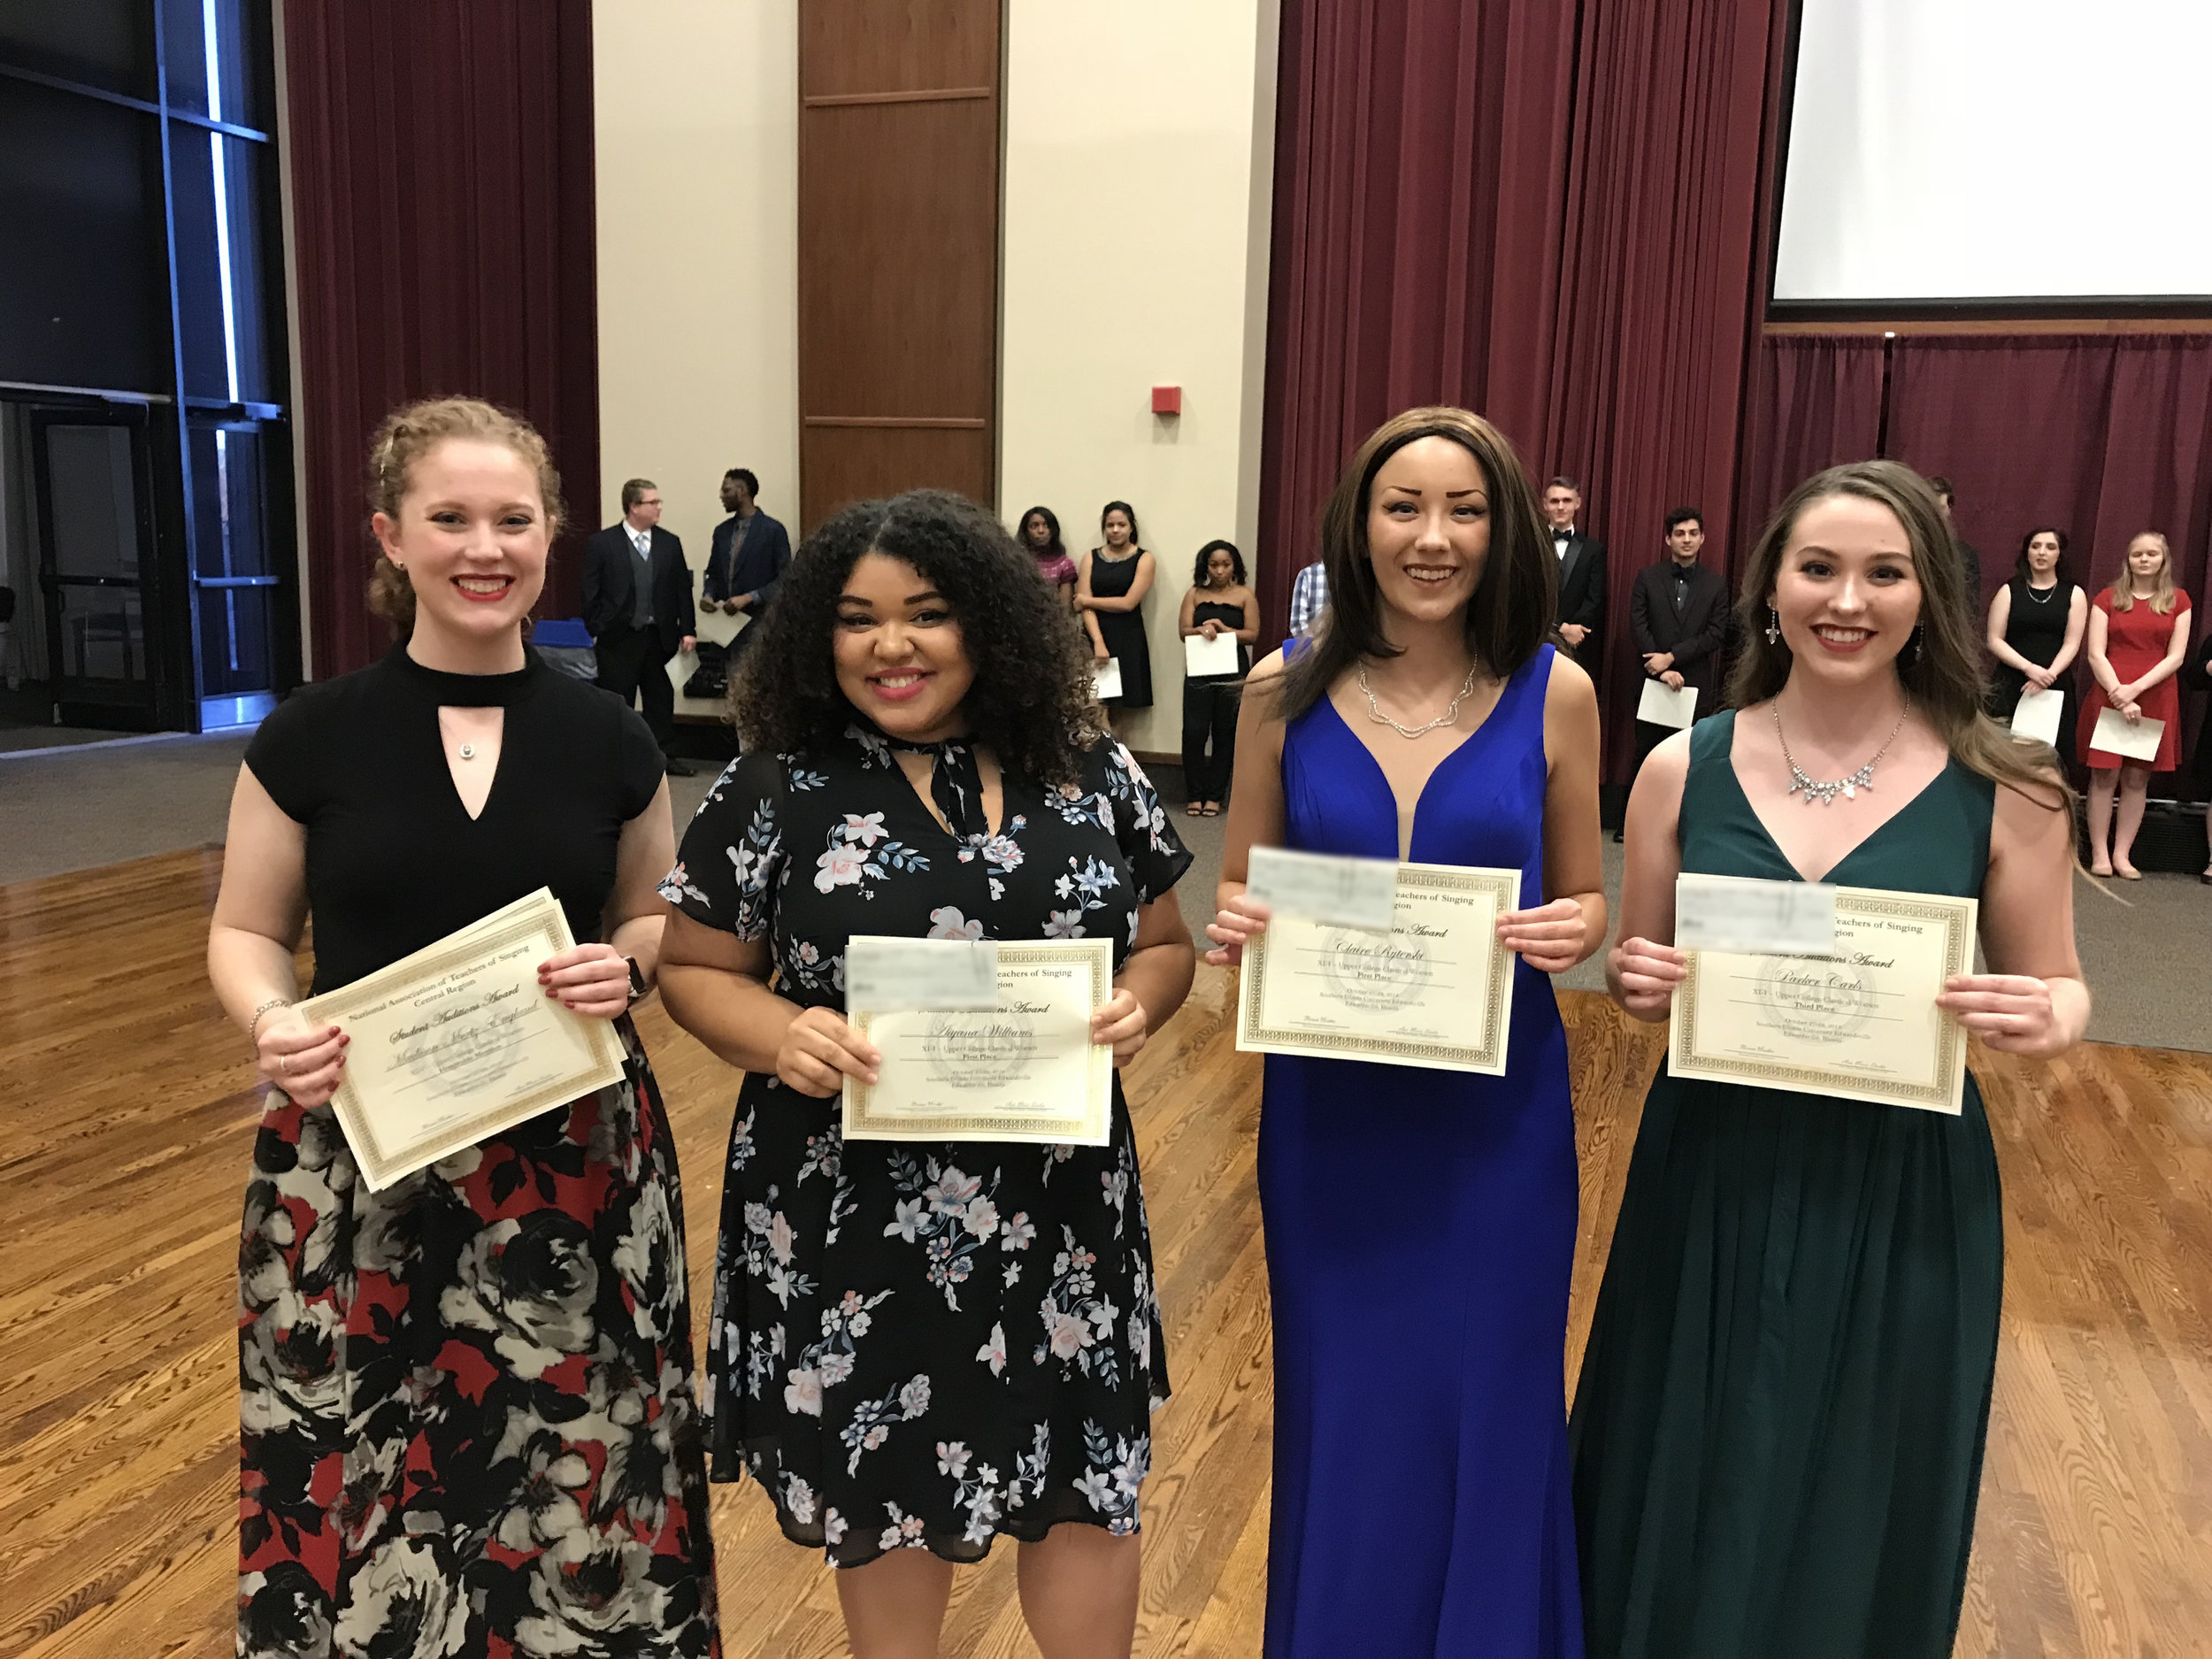 Category 1-1 - Upper College Classical Women